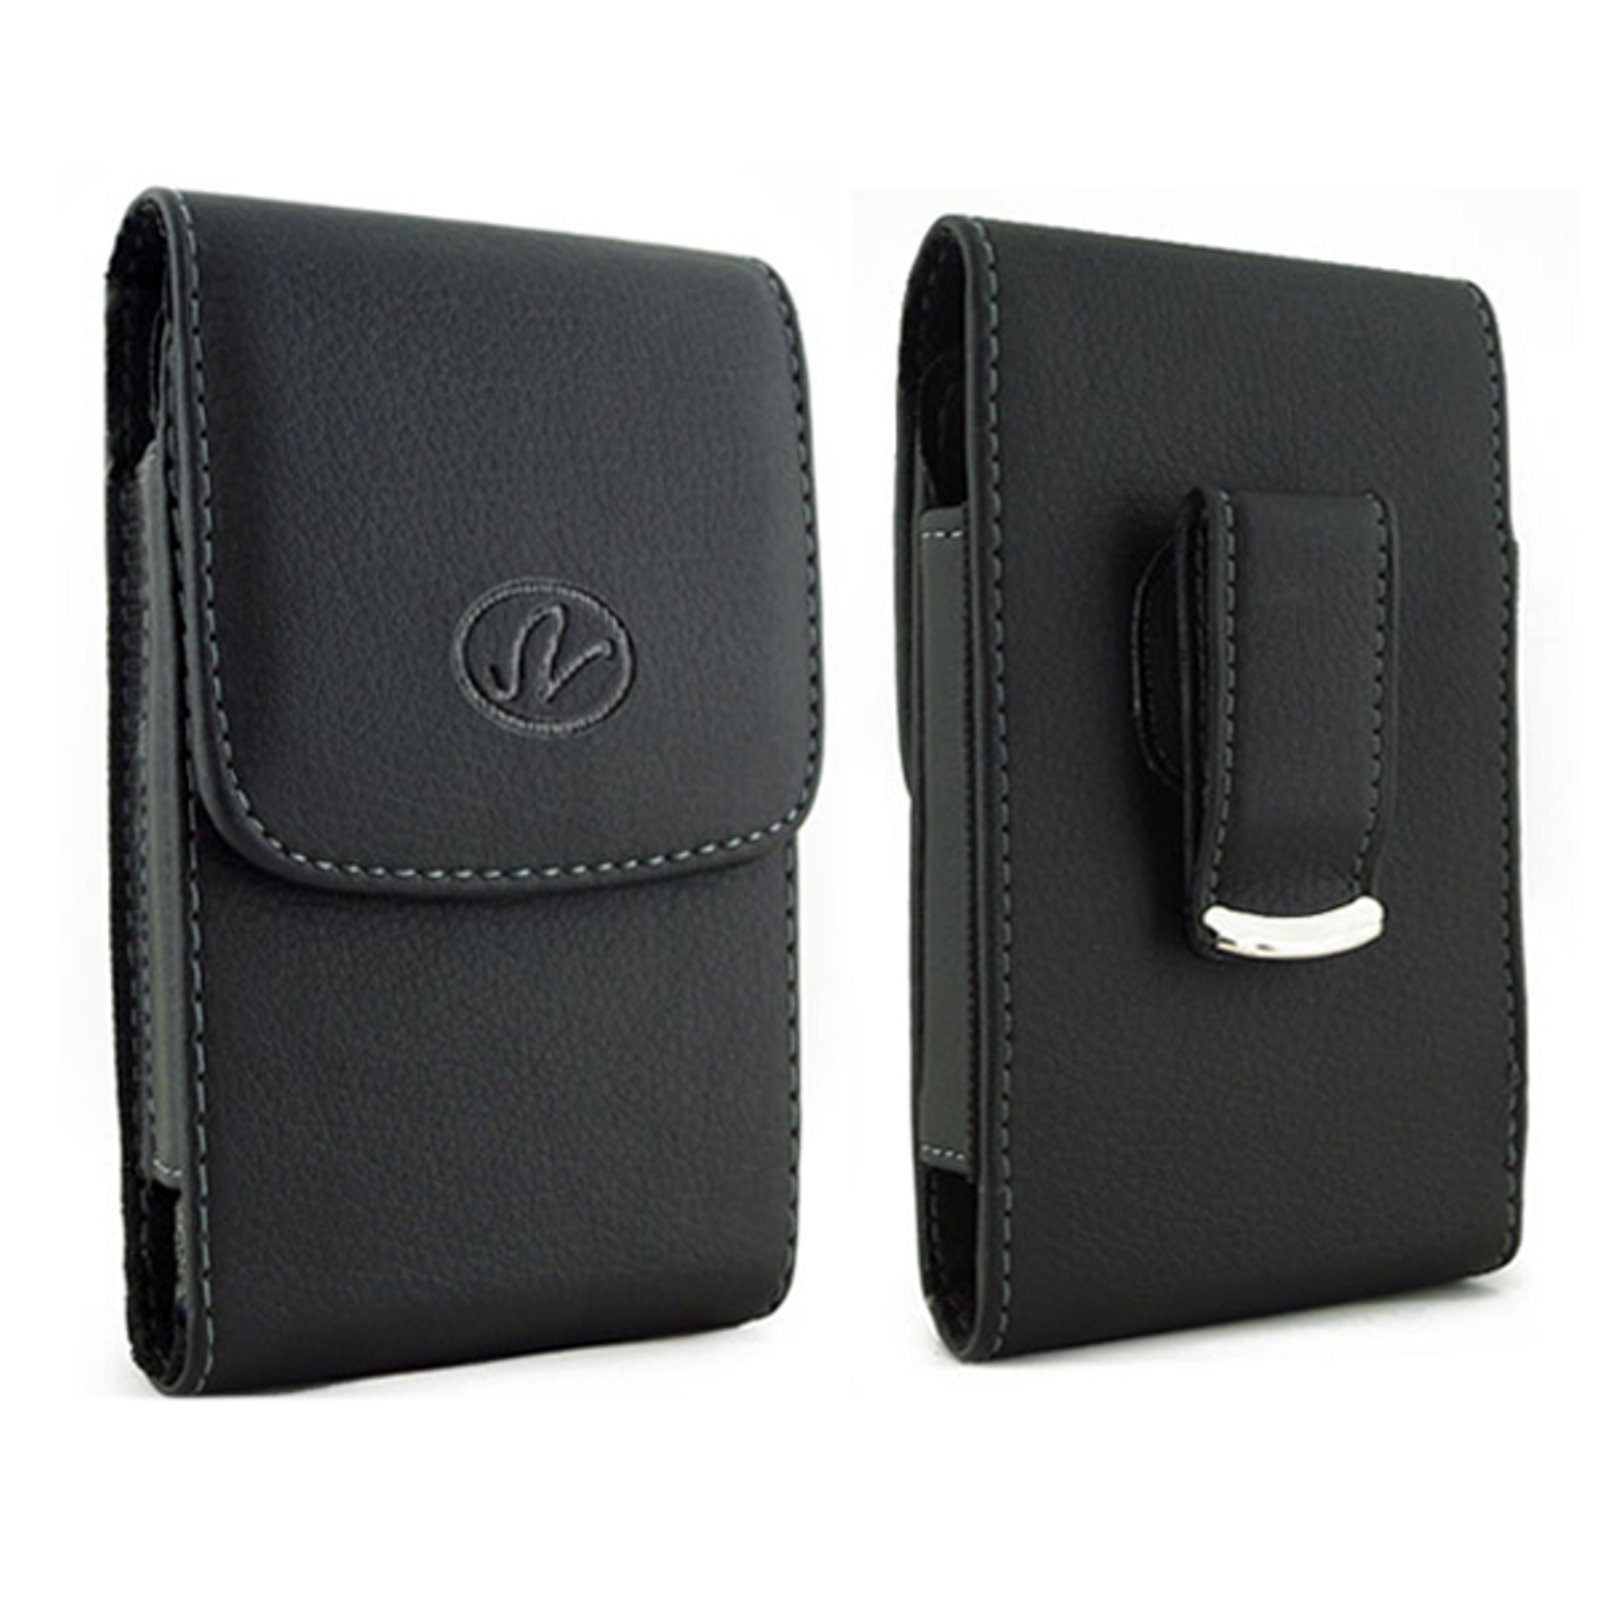 Vertical Leather Case Cover Holster with Swivel Belt Clip FOR Verizon HTC Desire 526 * Fits phone w/ Single Layer Case on it *